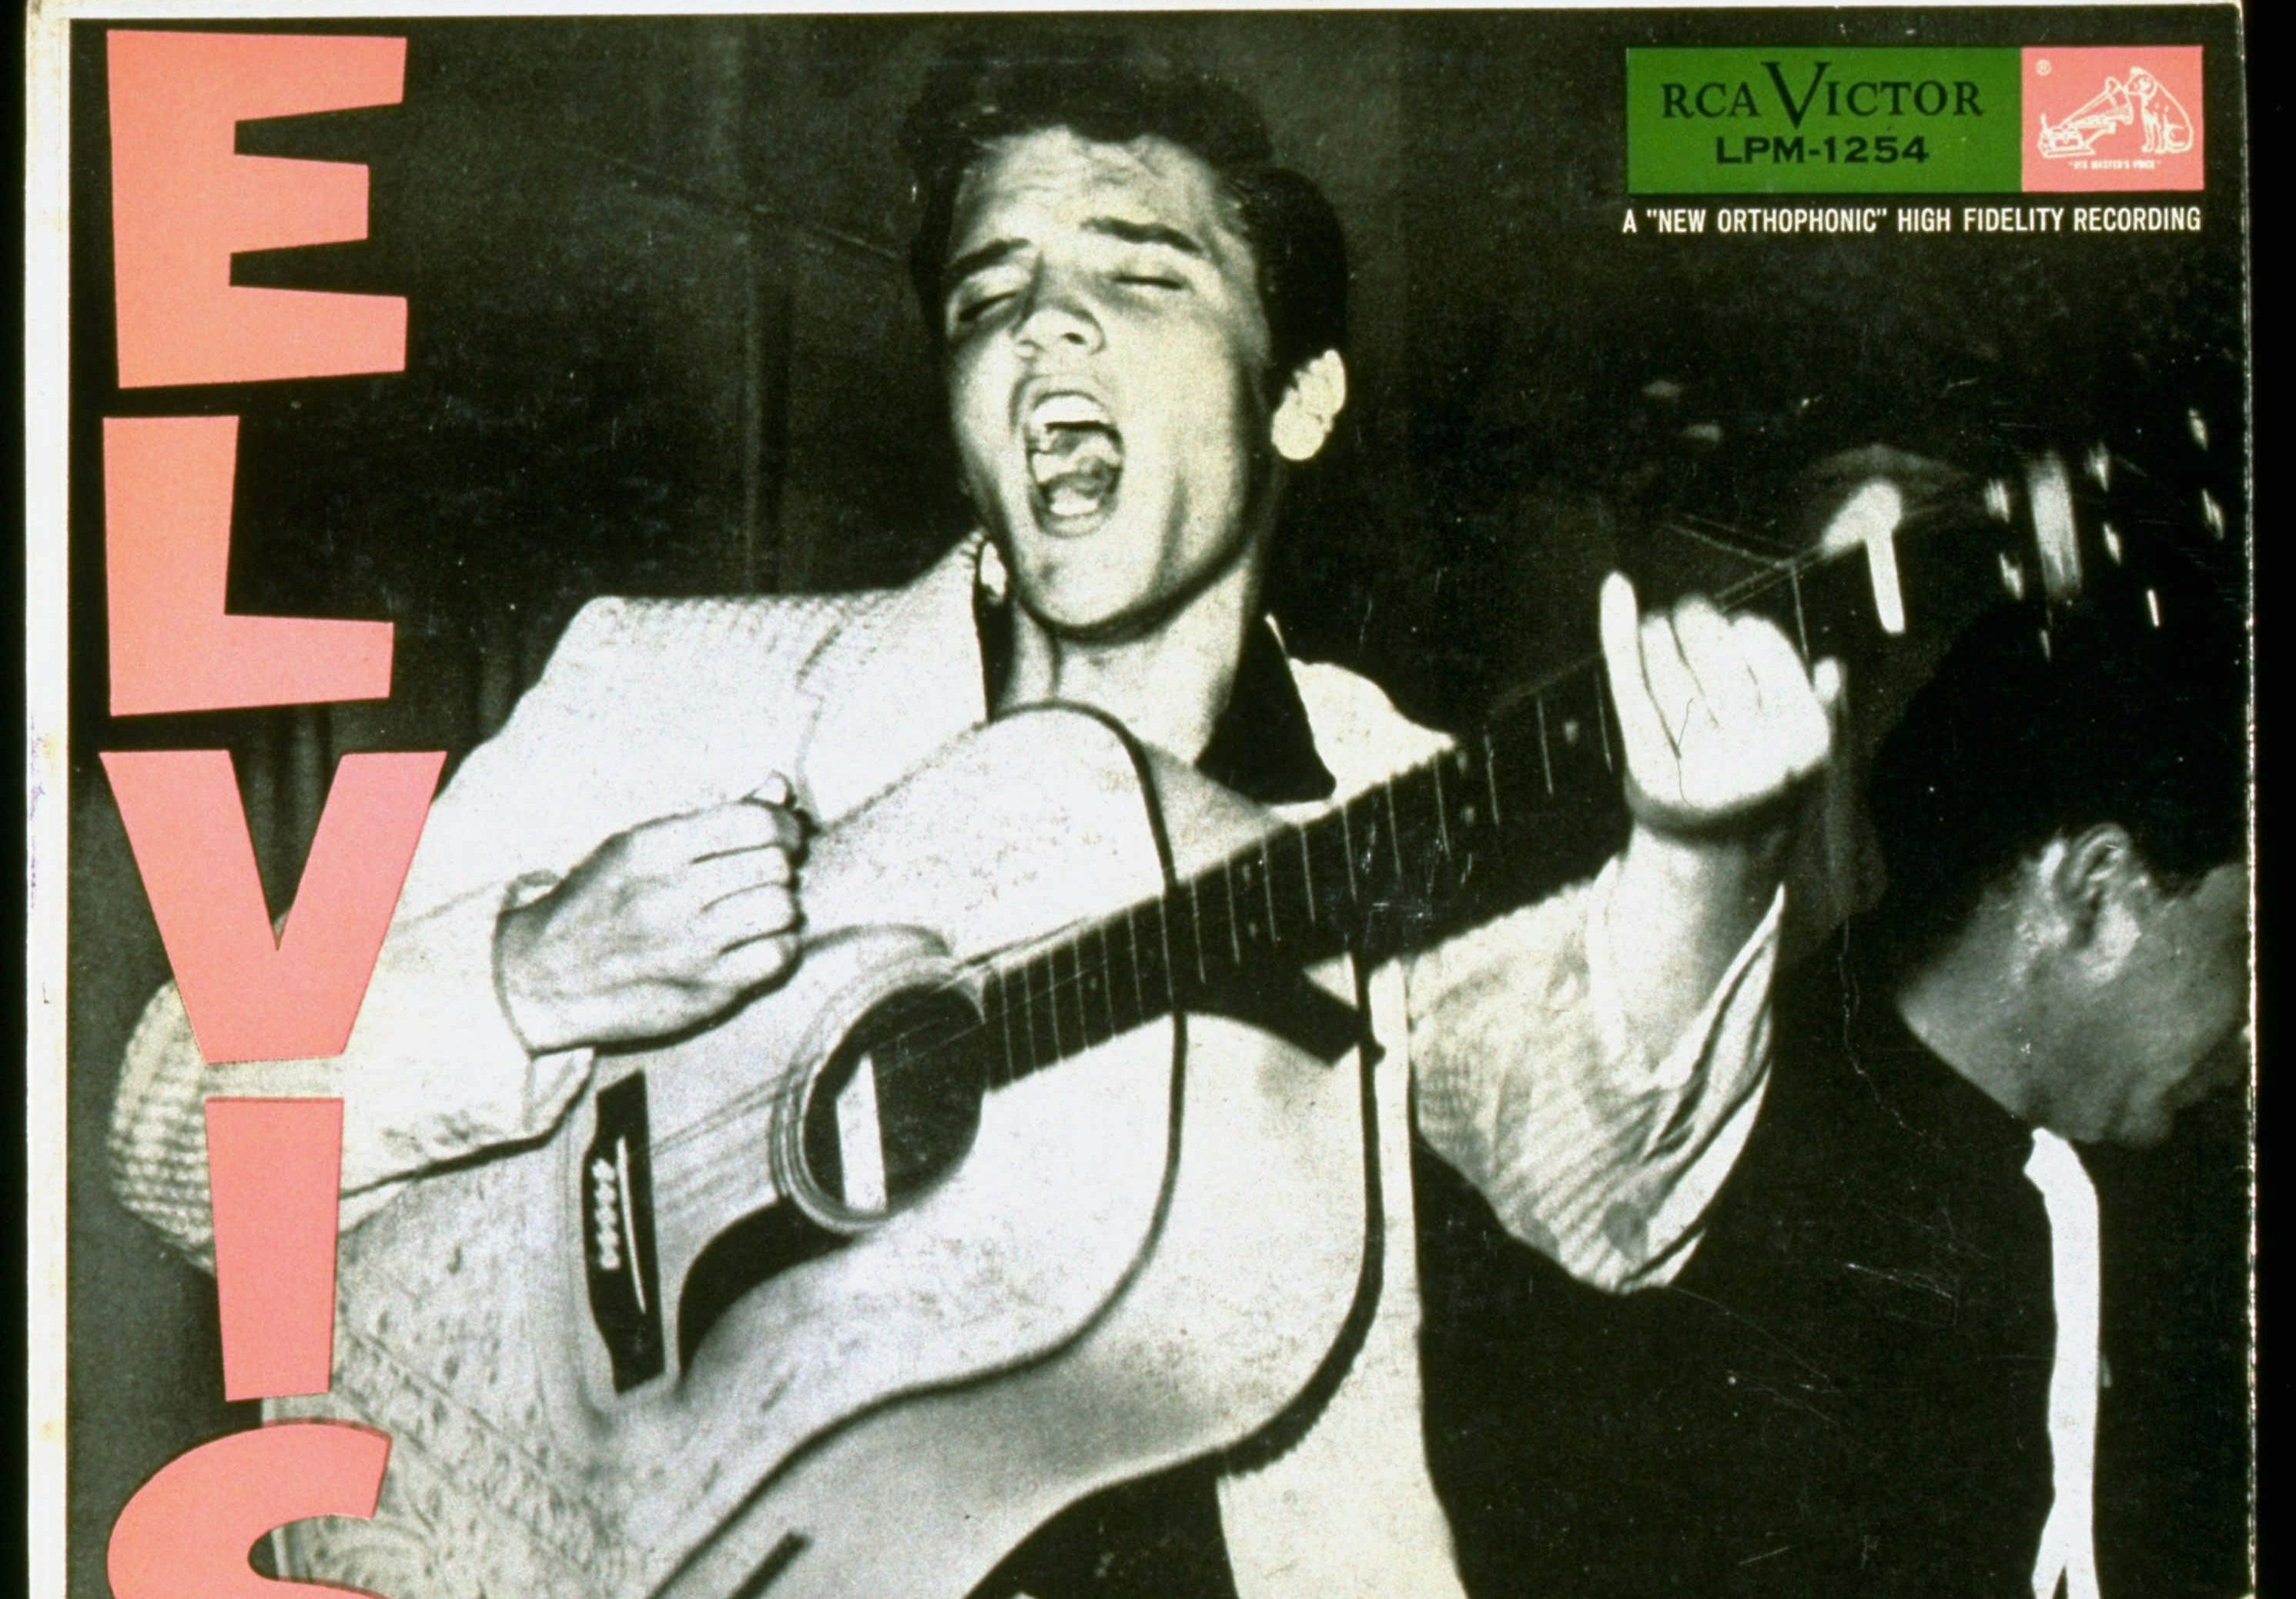 126   Charted albums. That total includes 10 No. 1s on the 'Billboard' album chart. The first was 1956's 'Elvis Presley,' and the most recent was 2002's 'Elv1s: 30 #1 Hits.'